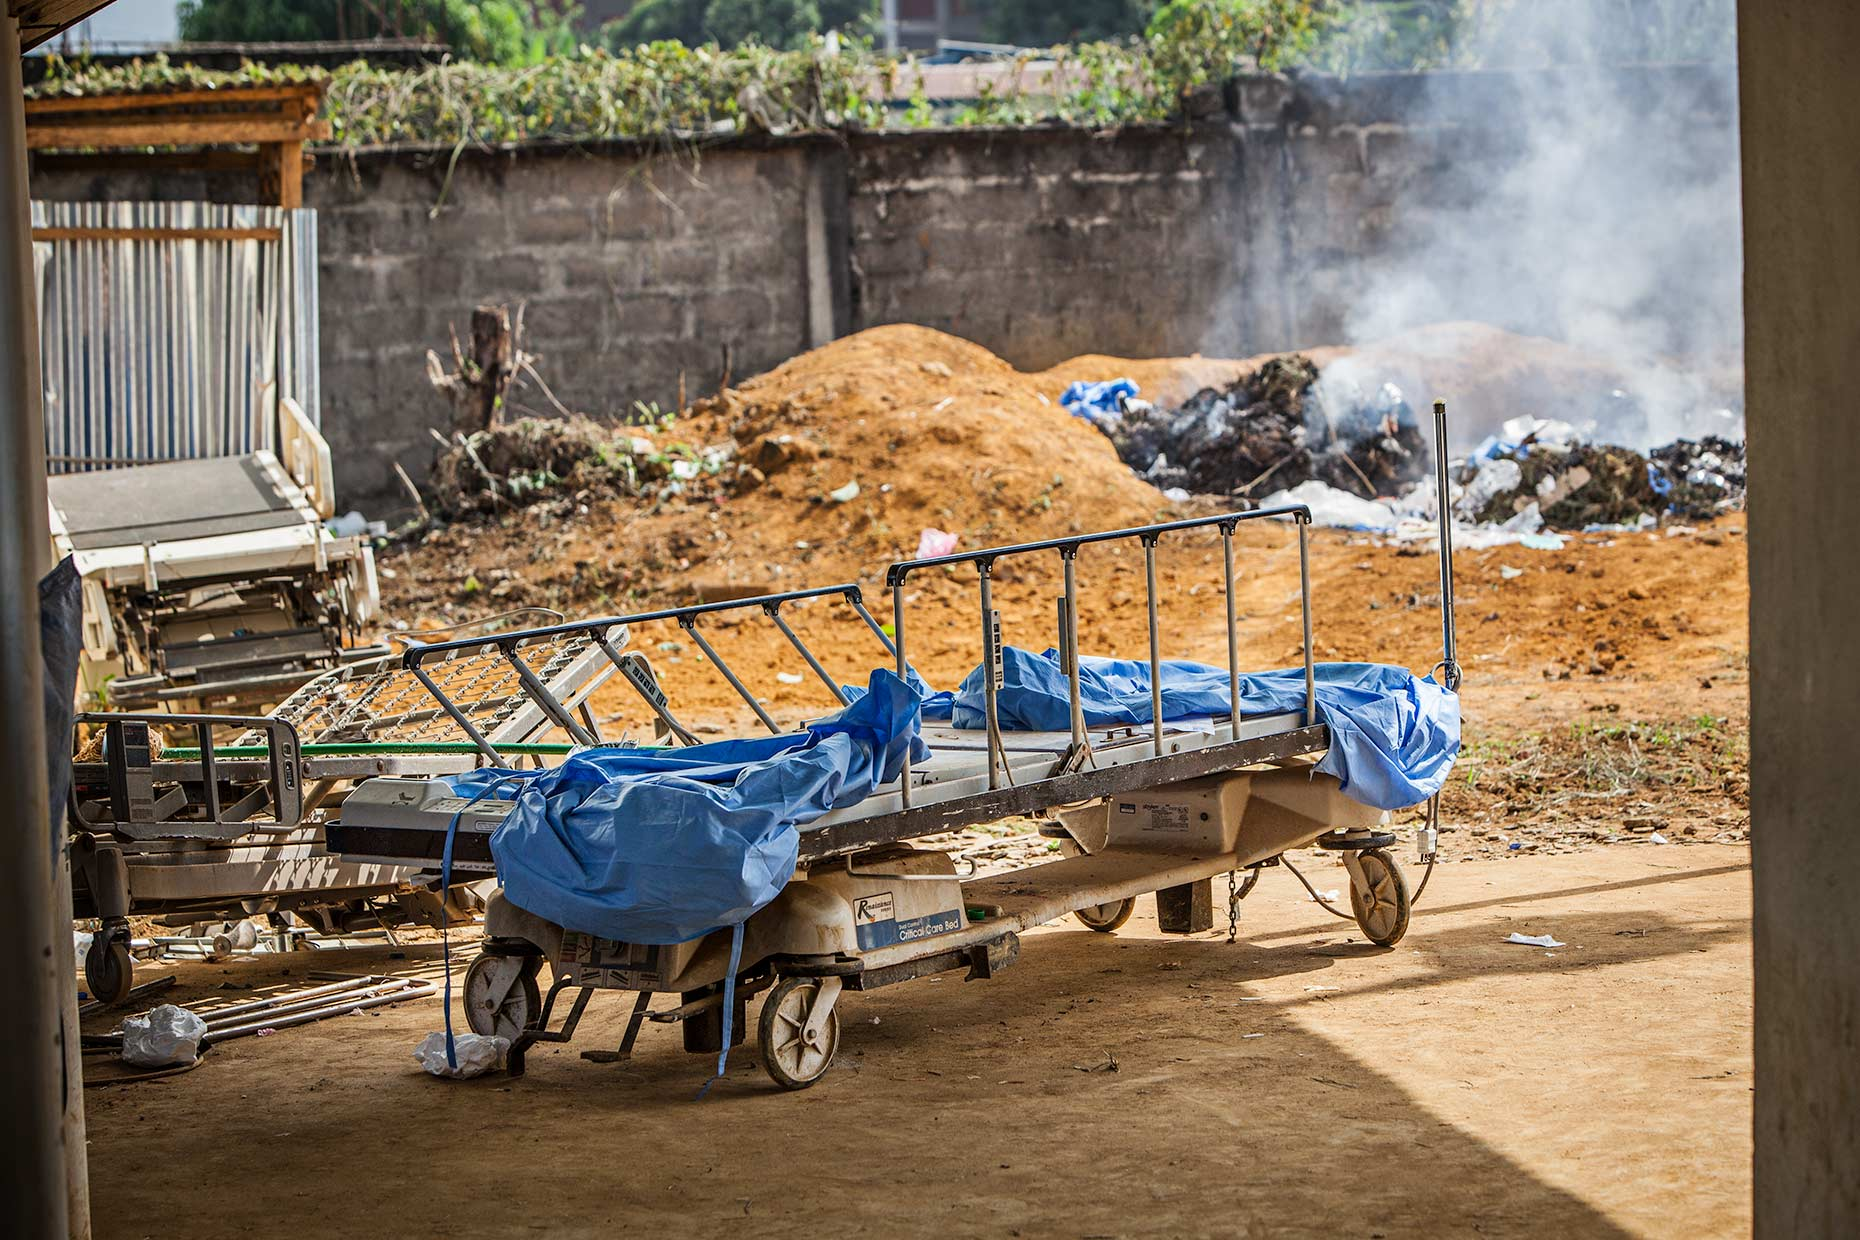 An empty gurney sits in front of a burning pile of medical waste at an Ebola hospital